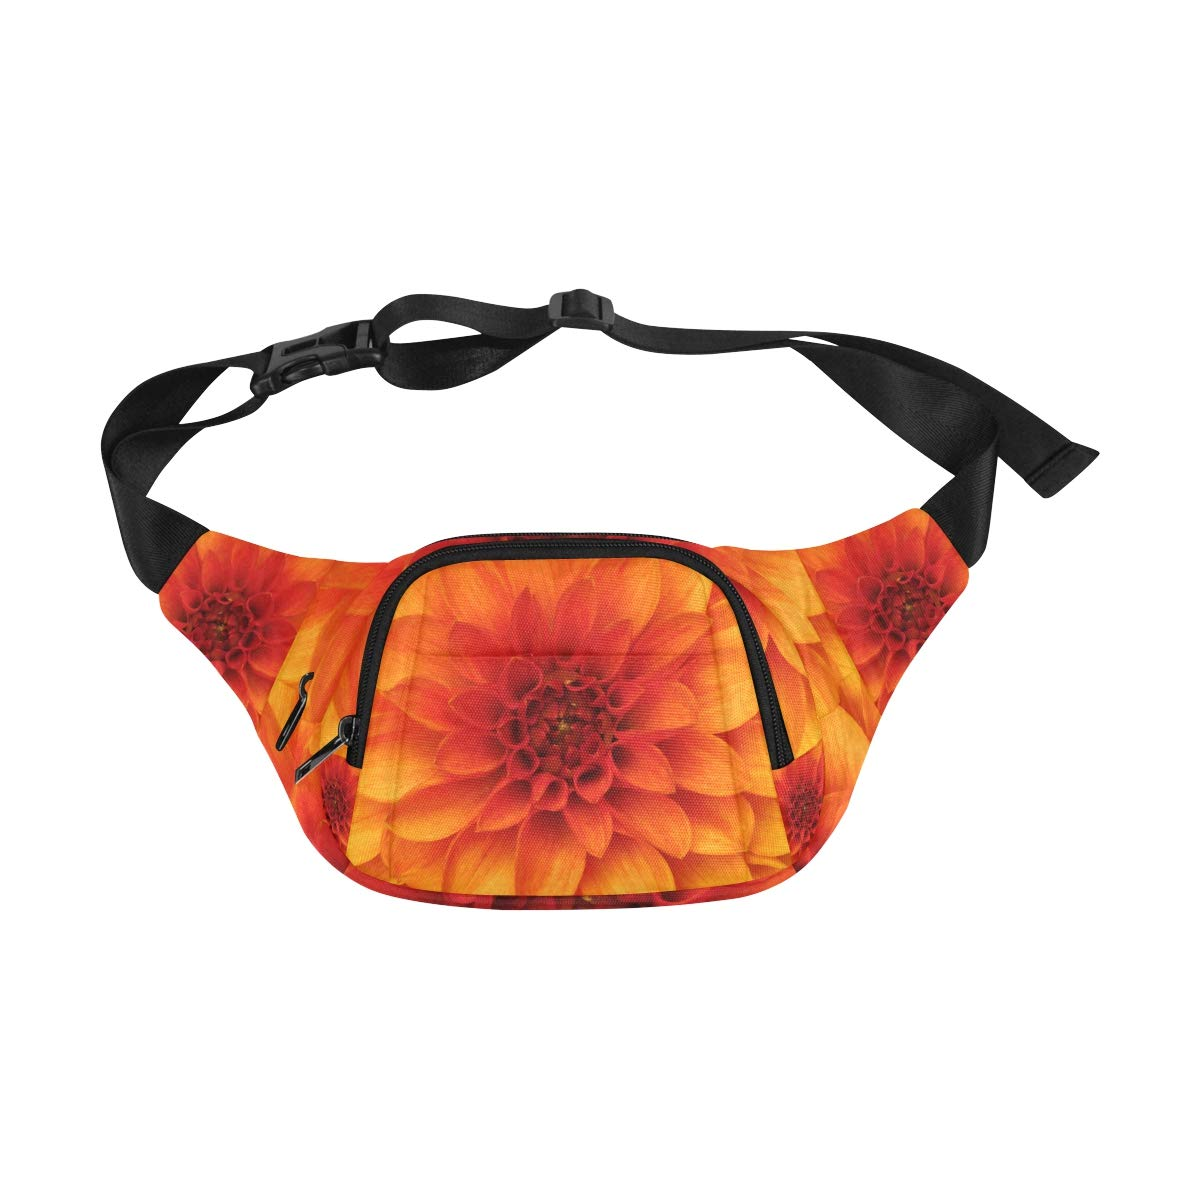 Orange Dahlia And Beautiful Petals Fenny Packs Waist Bags Adjustable Belt Waterproof Nylon Travel Running Sport Vacation Party For Men Women Boys Girls Kids